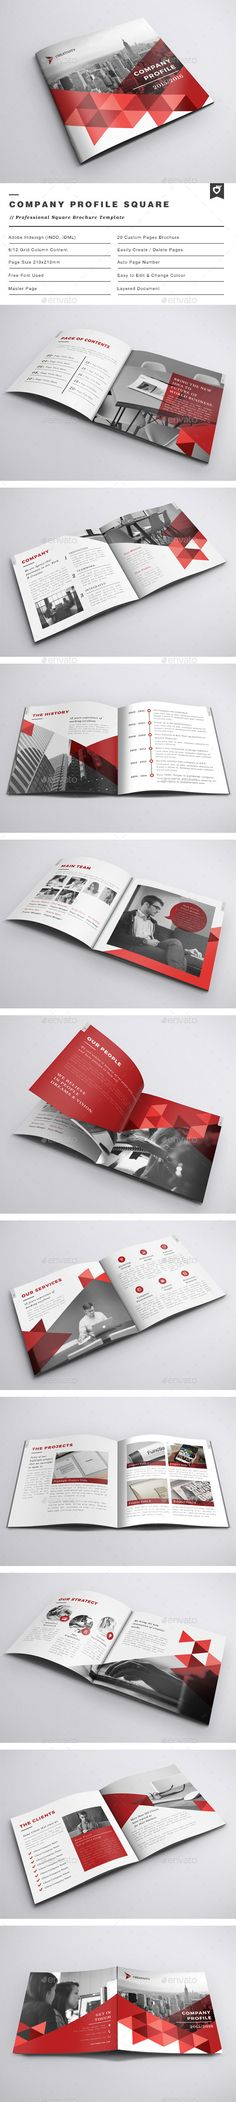 Corporate Portfolio Brochure 18 Pages Template InDesign INDD - corporate profile template